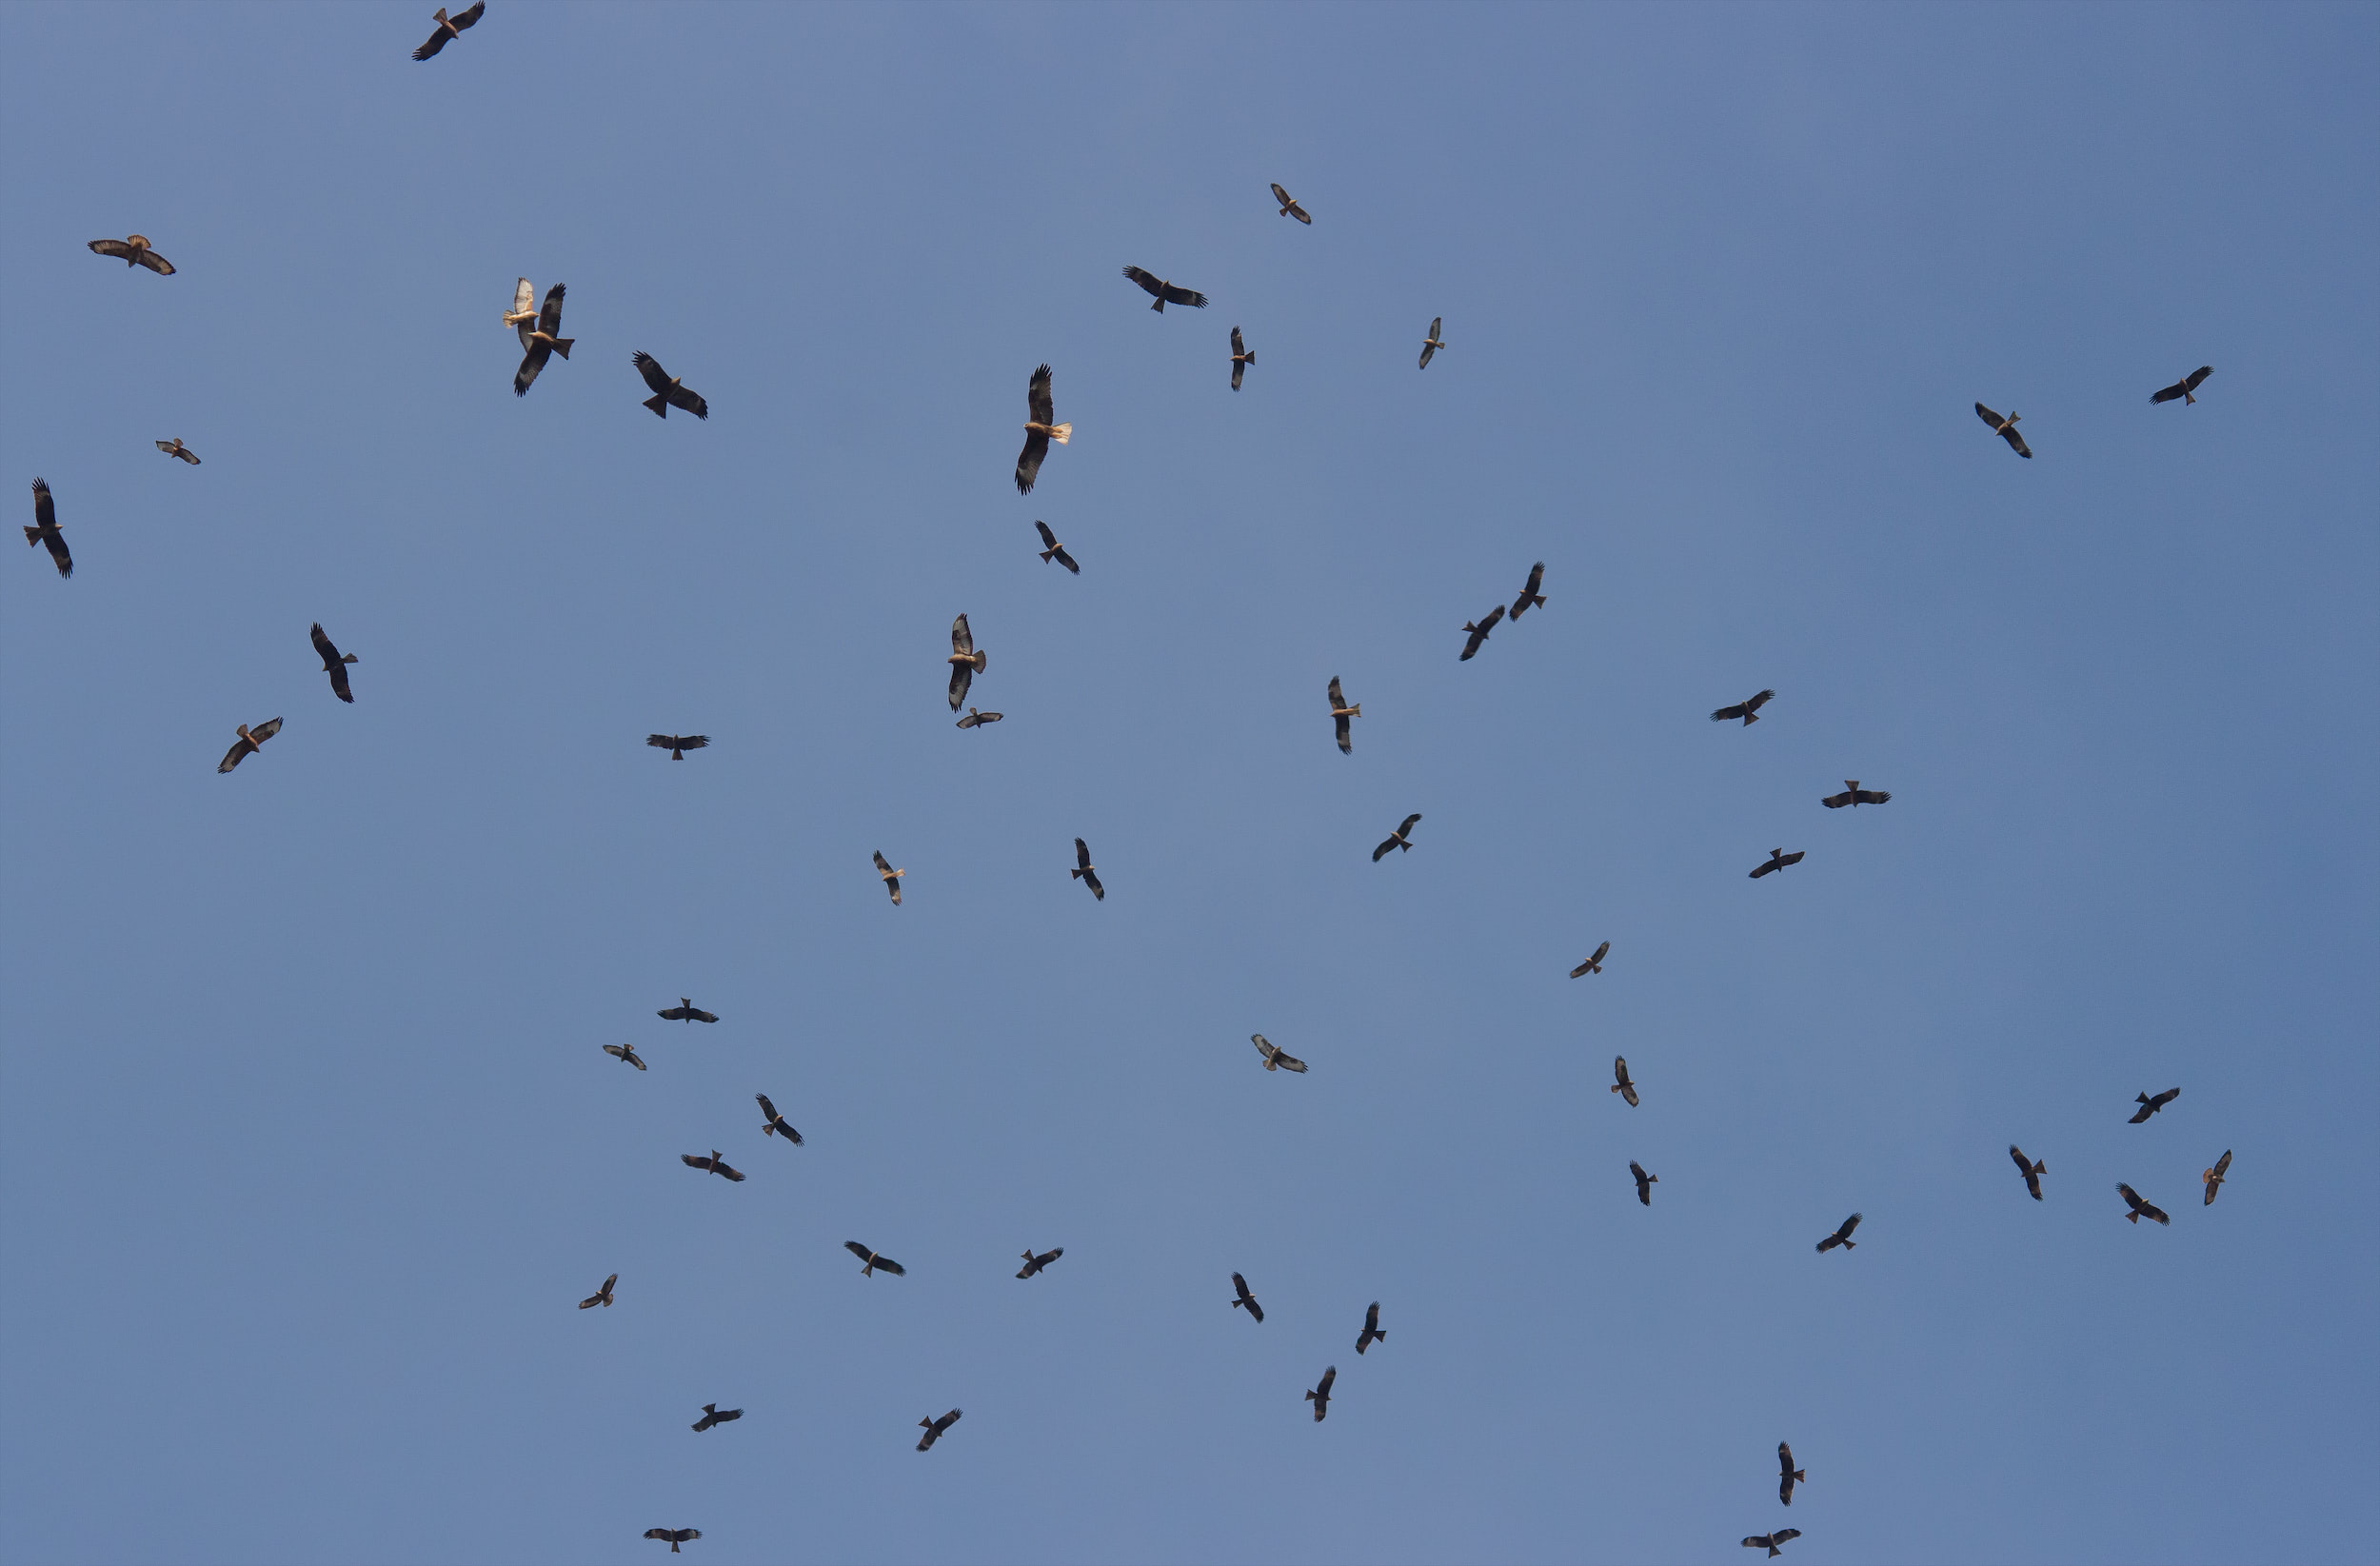 Mixed flock of Black Kites, Steppe Buzzards and a Booted Eagle. Photo by Tohar Tal.